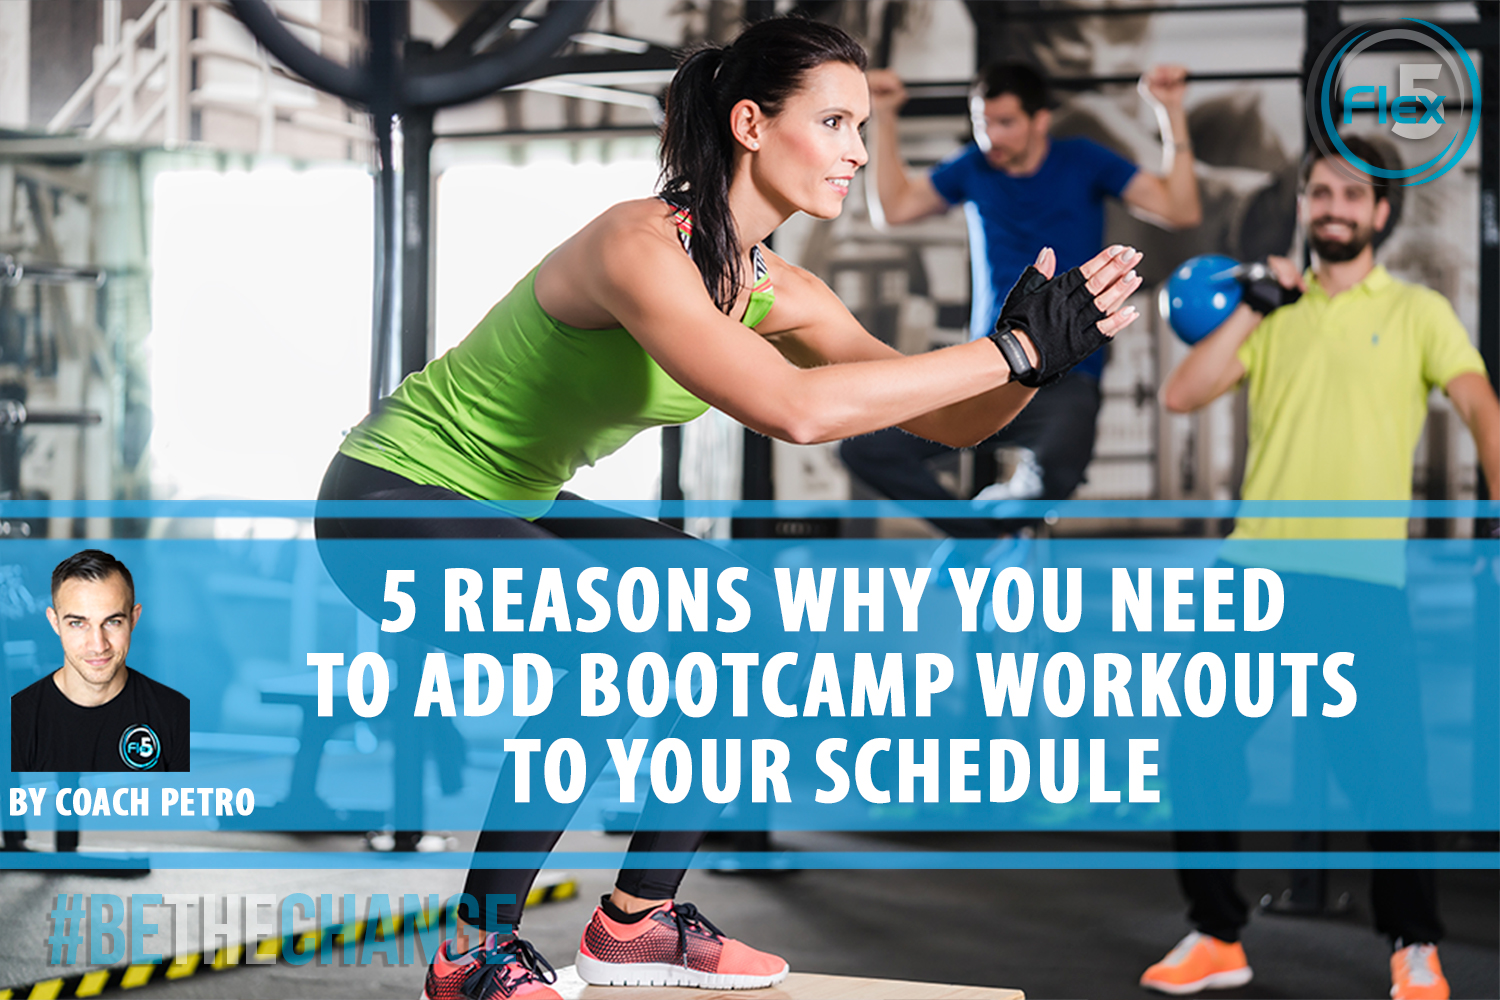 How can Bootcamp help you in life?